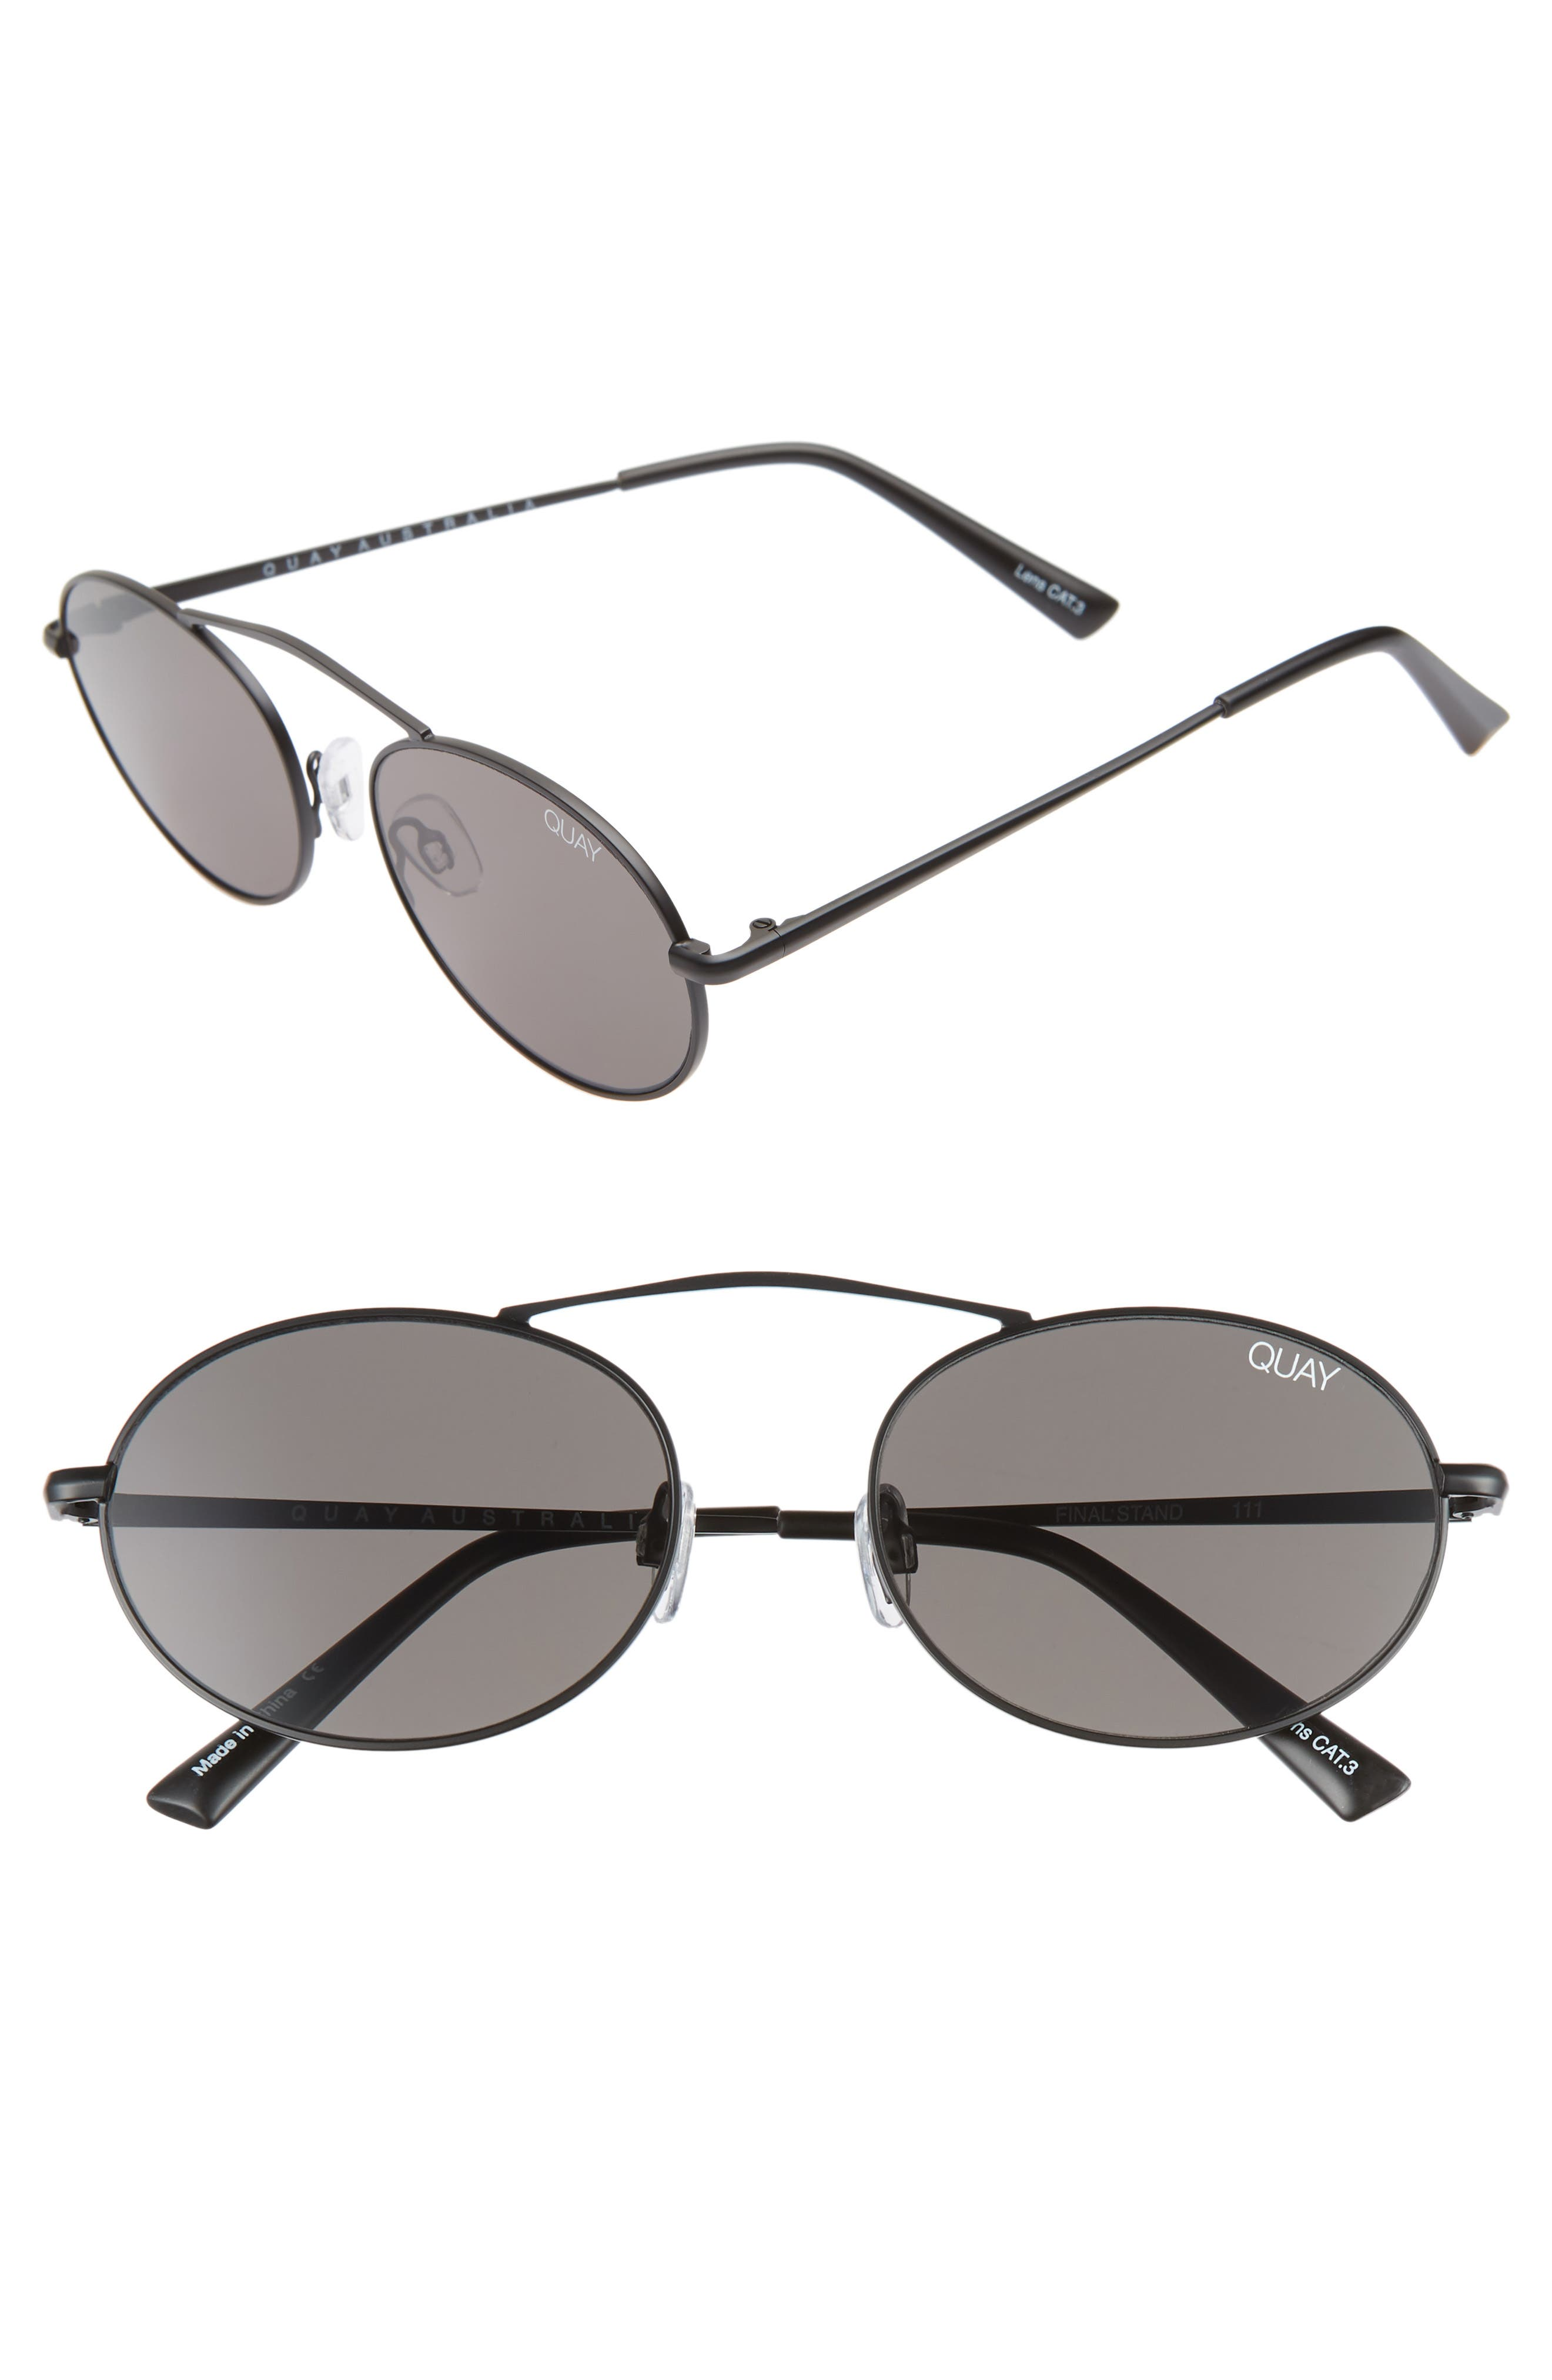 x Finders Keepers Final Stand 53mm Round Sunglasses,                             Main thumbnail 1, color,                             BLACK/ SMOKE